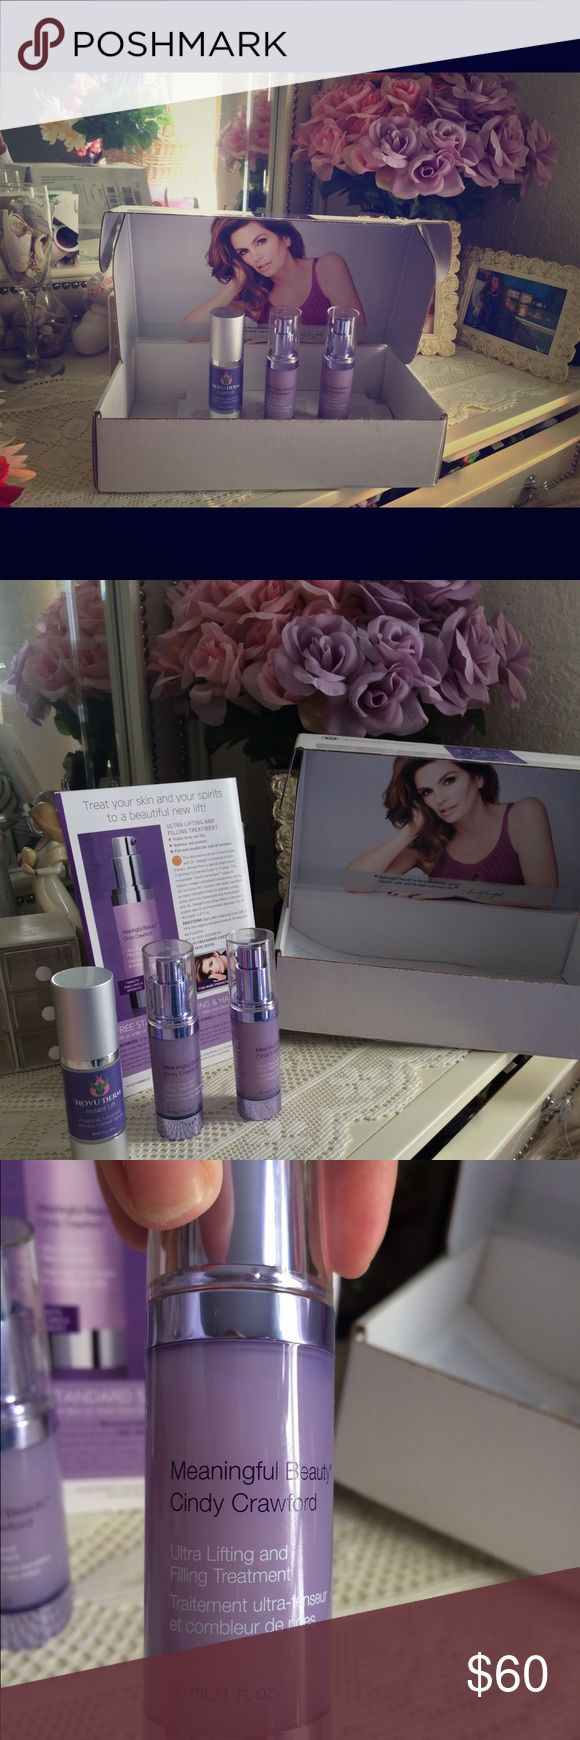 CINDY CRAWFORD AND NOVU DERM INSTANT LIFT 3 OZ.! Meaningful Beauty NWOT 2 FULL BOTTLES UNWRAPPED ONLY PUMPED ONCE ONE BOTTLE DONT LIKE...NOT AGONG I HAVE DARK UNDER EYES.  Throw in NOVU DERM a little used INSTANT LIFT AS FREEBIE! Cindy Crawford Other